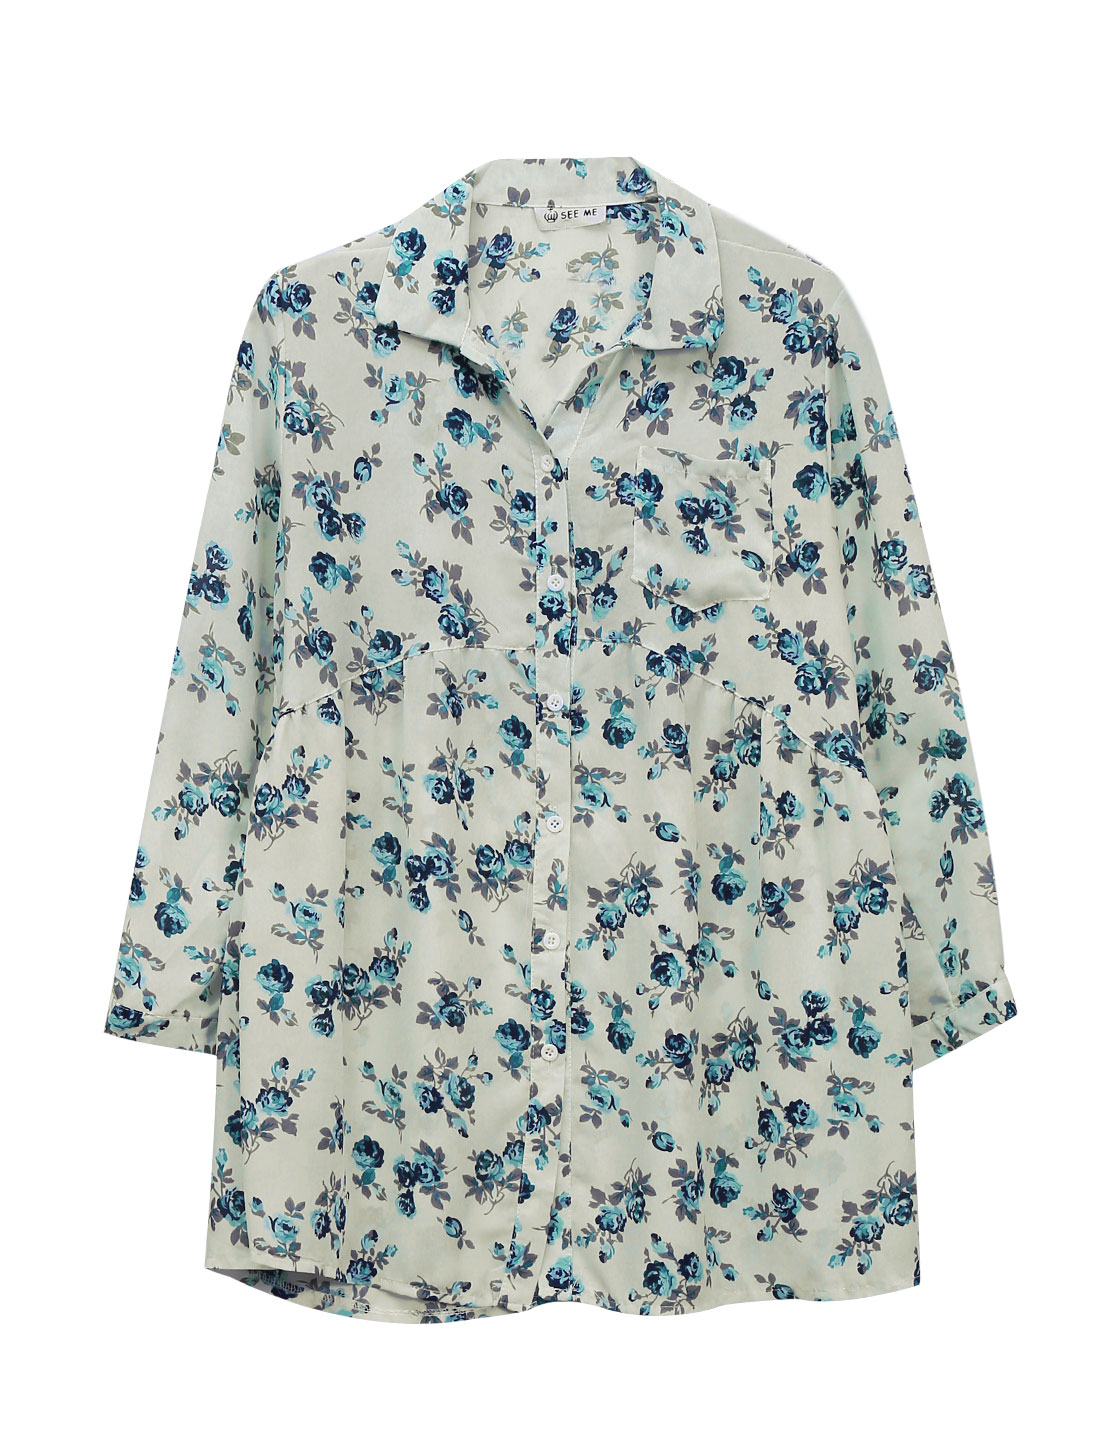 Lady Bust Pocket Point Collar Floral Print Fashion Chiffon Long Shirt Beige M